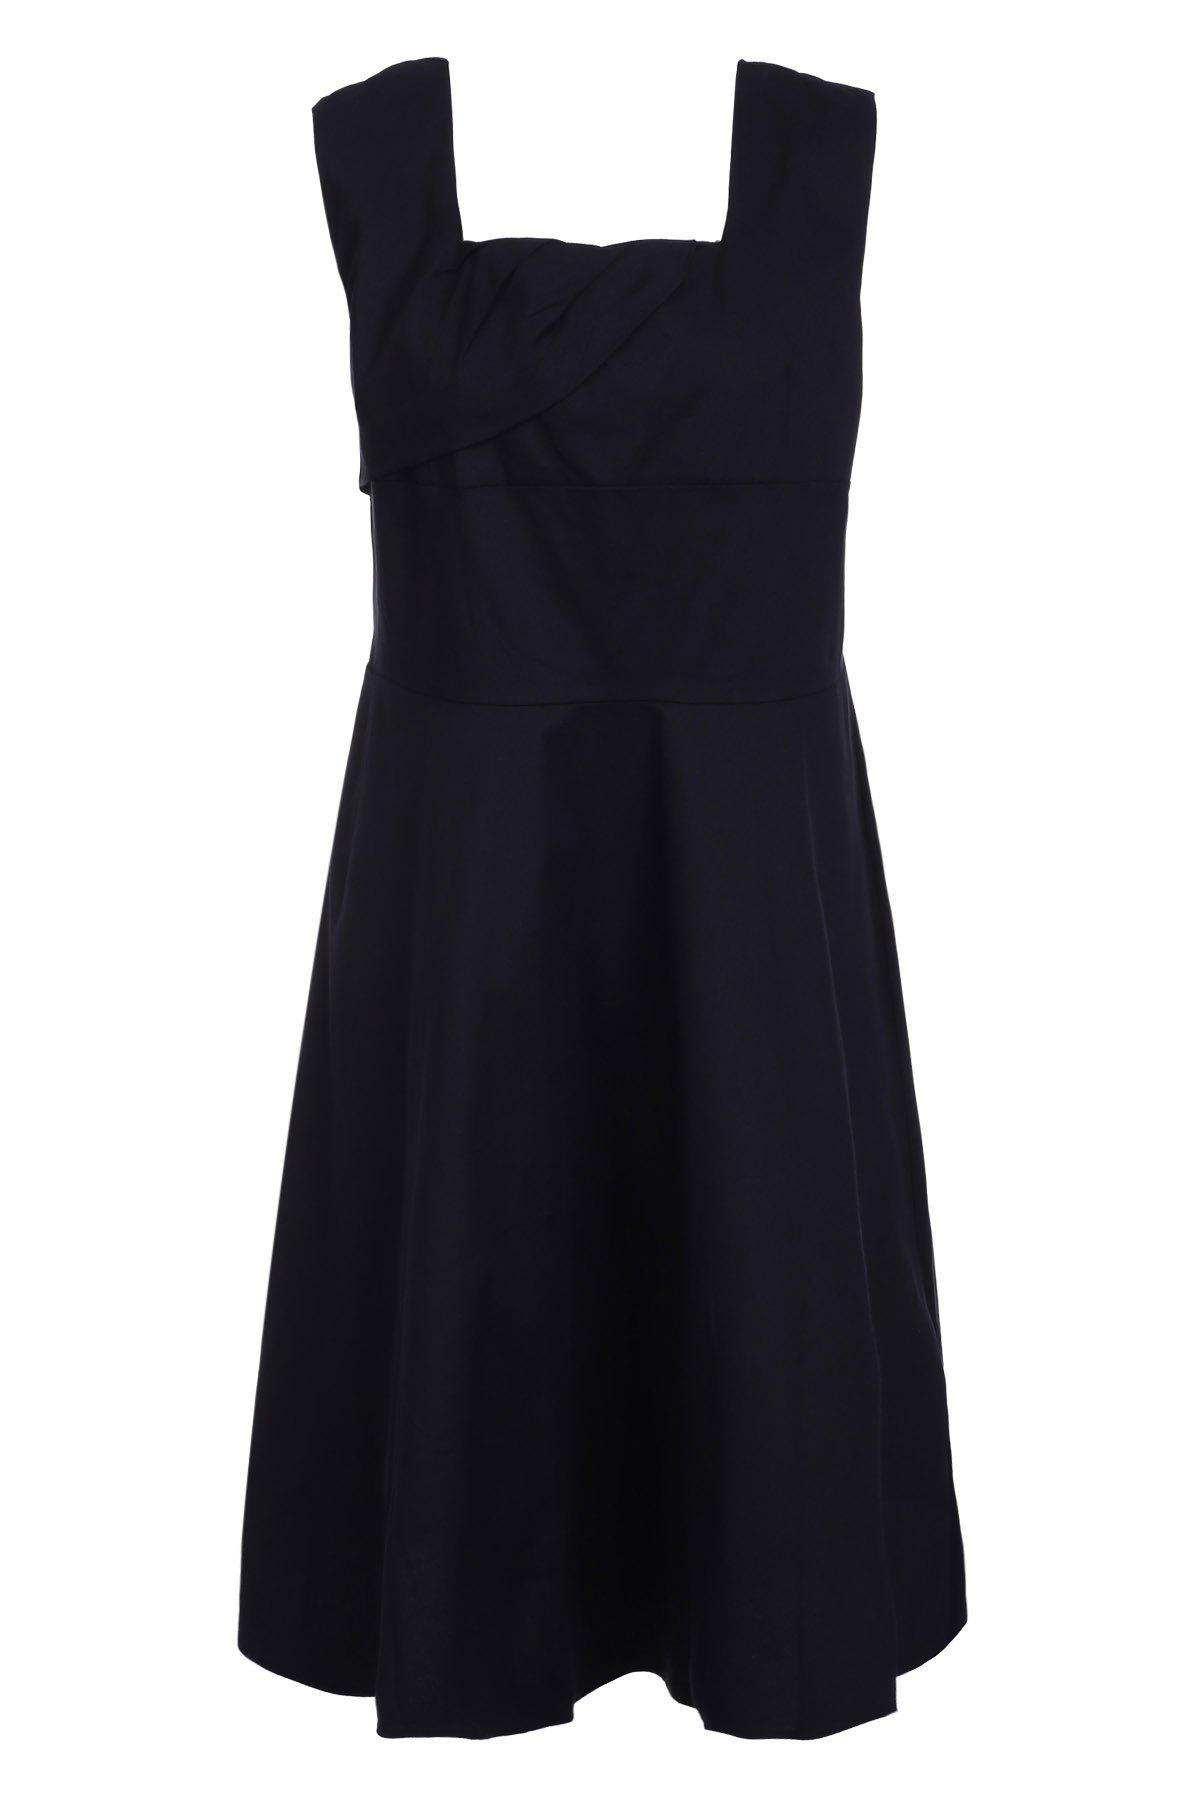 Best Retro Style Square Neck Sleeveless Solid Color Ball Gown Dress For Women